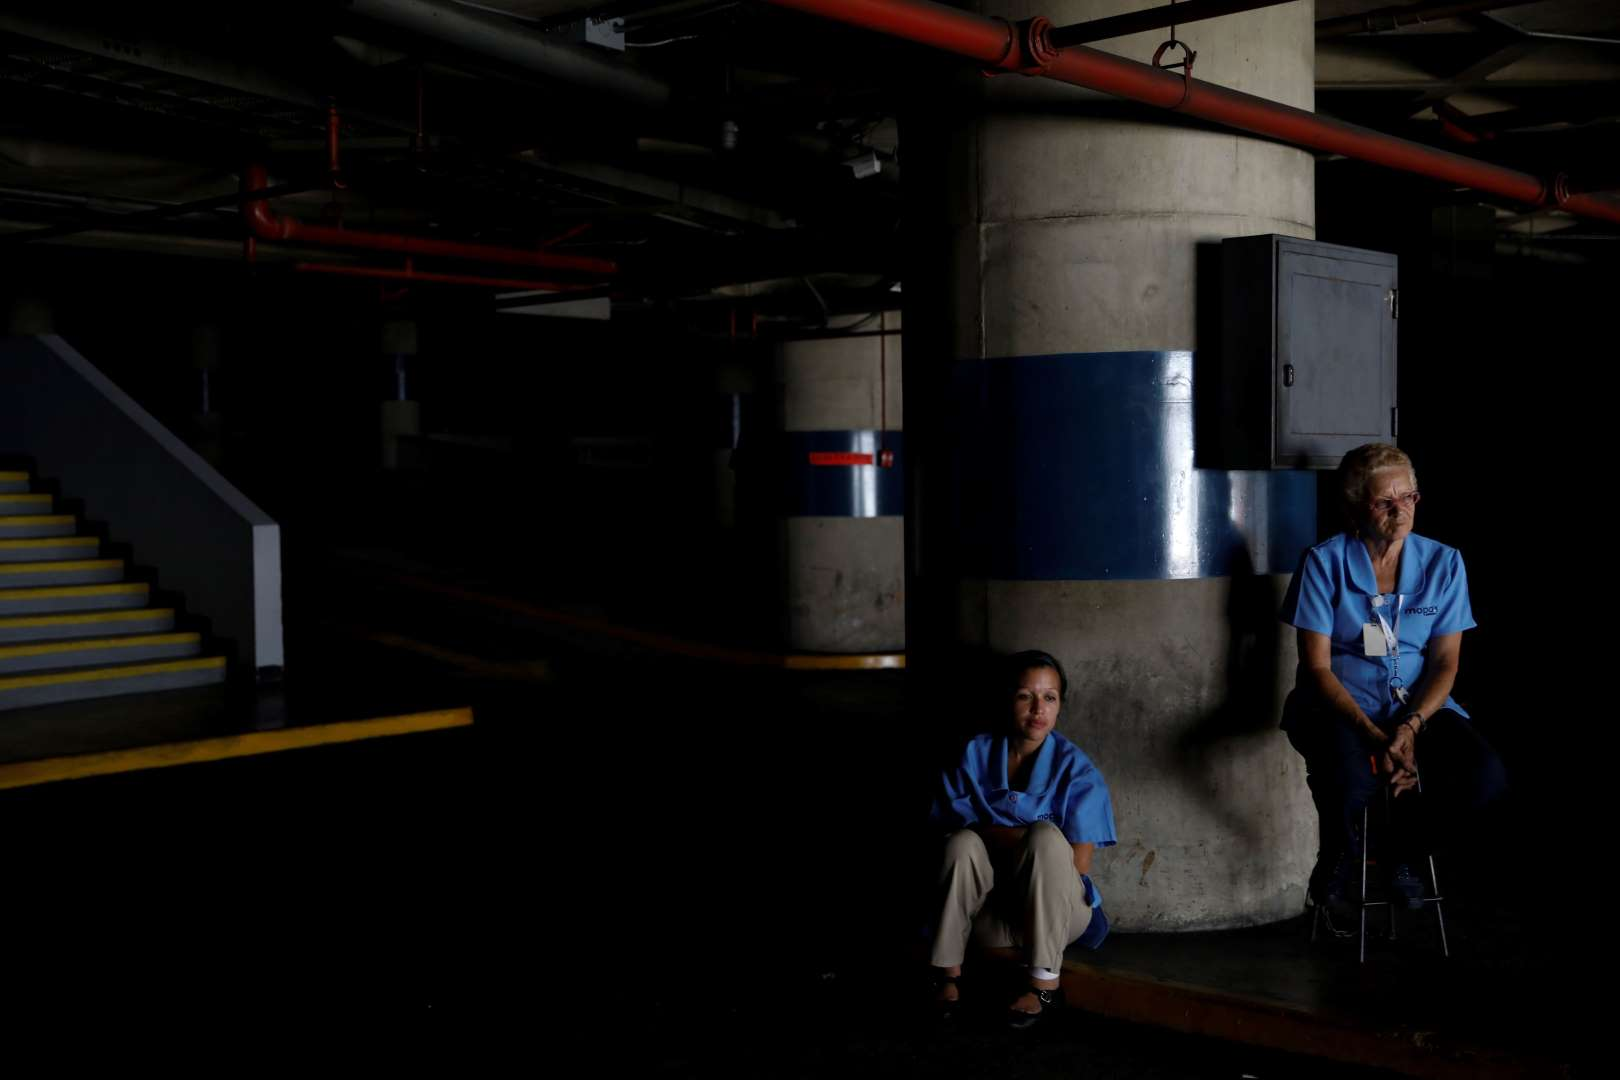 Venezuela Plunged Into Second Blackout Within 20 Days Of The First